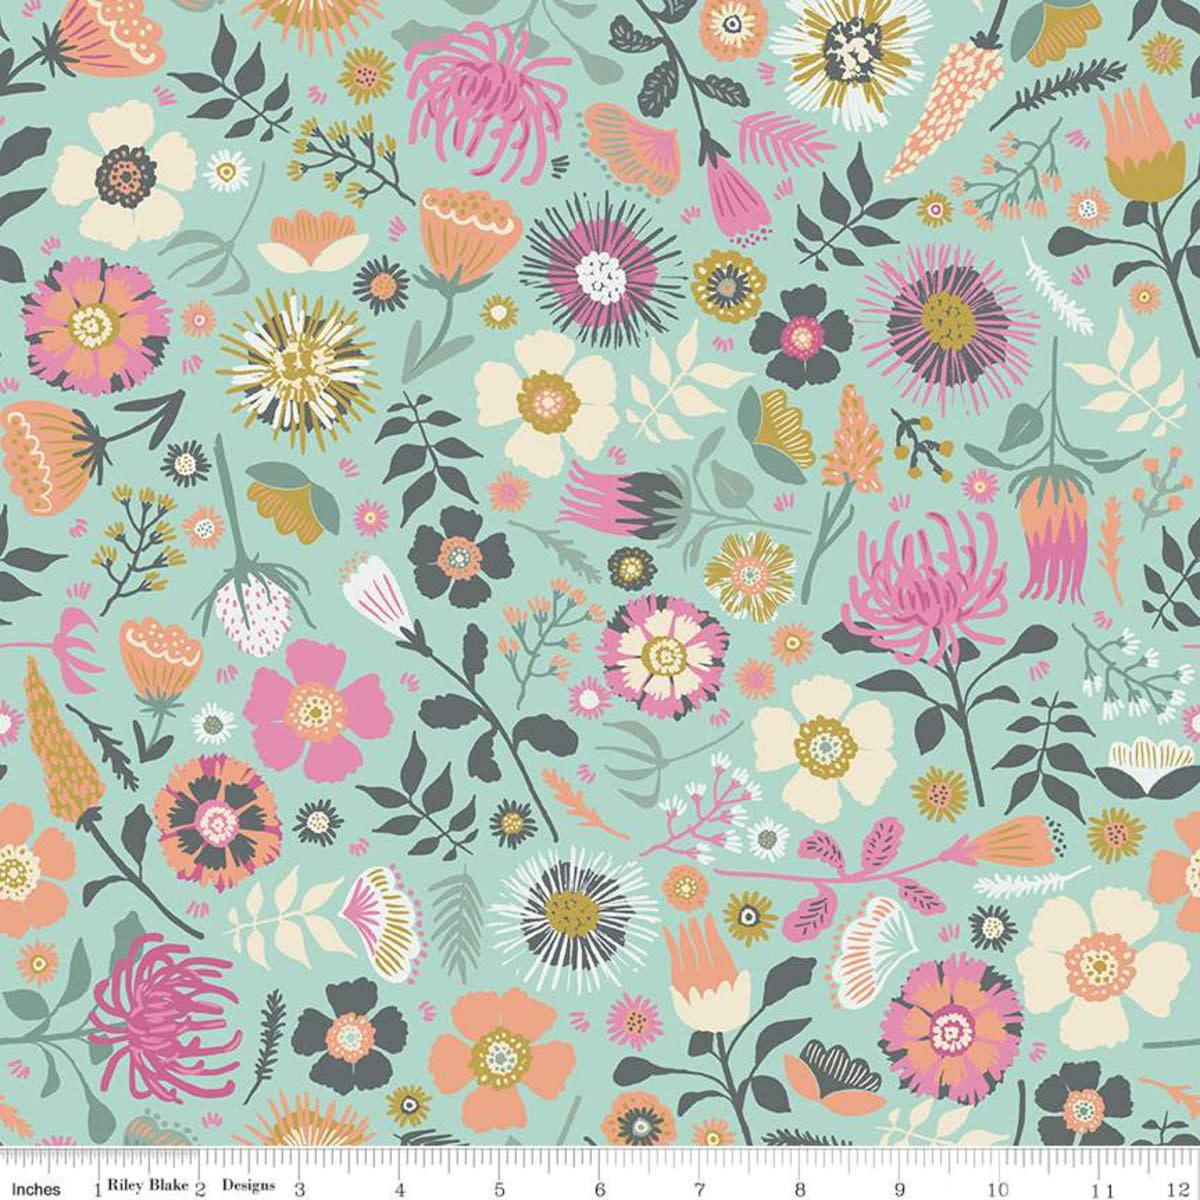 RILEY BLAKE DESIGNS MEADOW LANE, MAIN, MINT C10120 PER CM OR $20/M